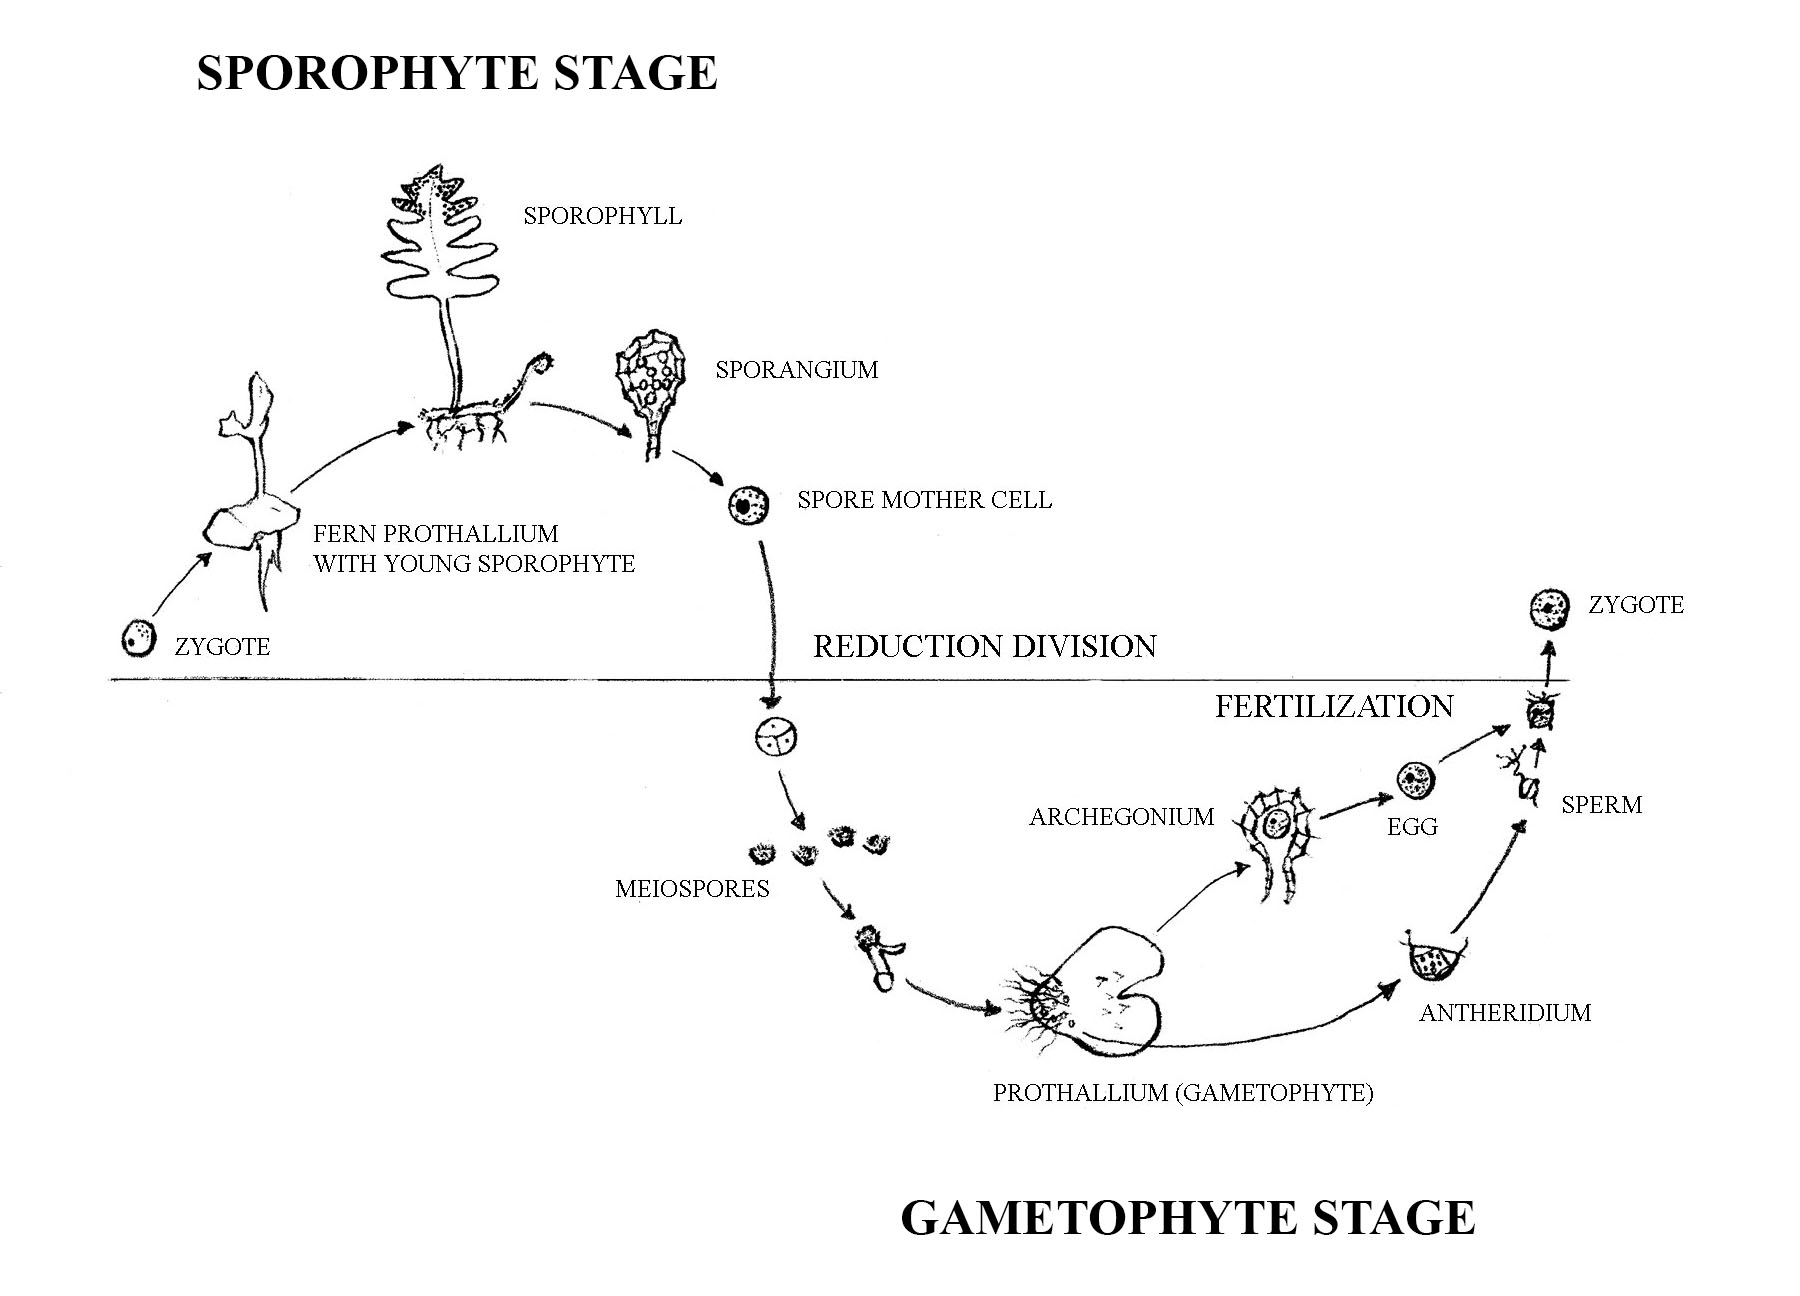 Fern life cycle. Sporophyte stage: Zygote to fern prothallium with young sporophyte to sporophyll to sporangium to spore mother cell. Gametophyte stage: Reduction division to Mesospores to prothallium (gametophyte) to archegonium to egg